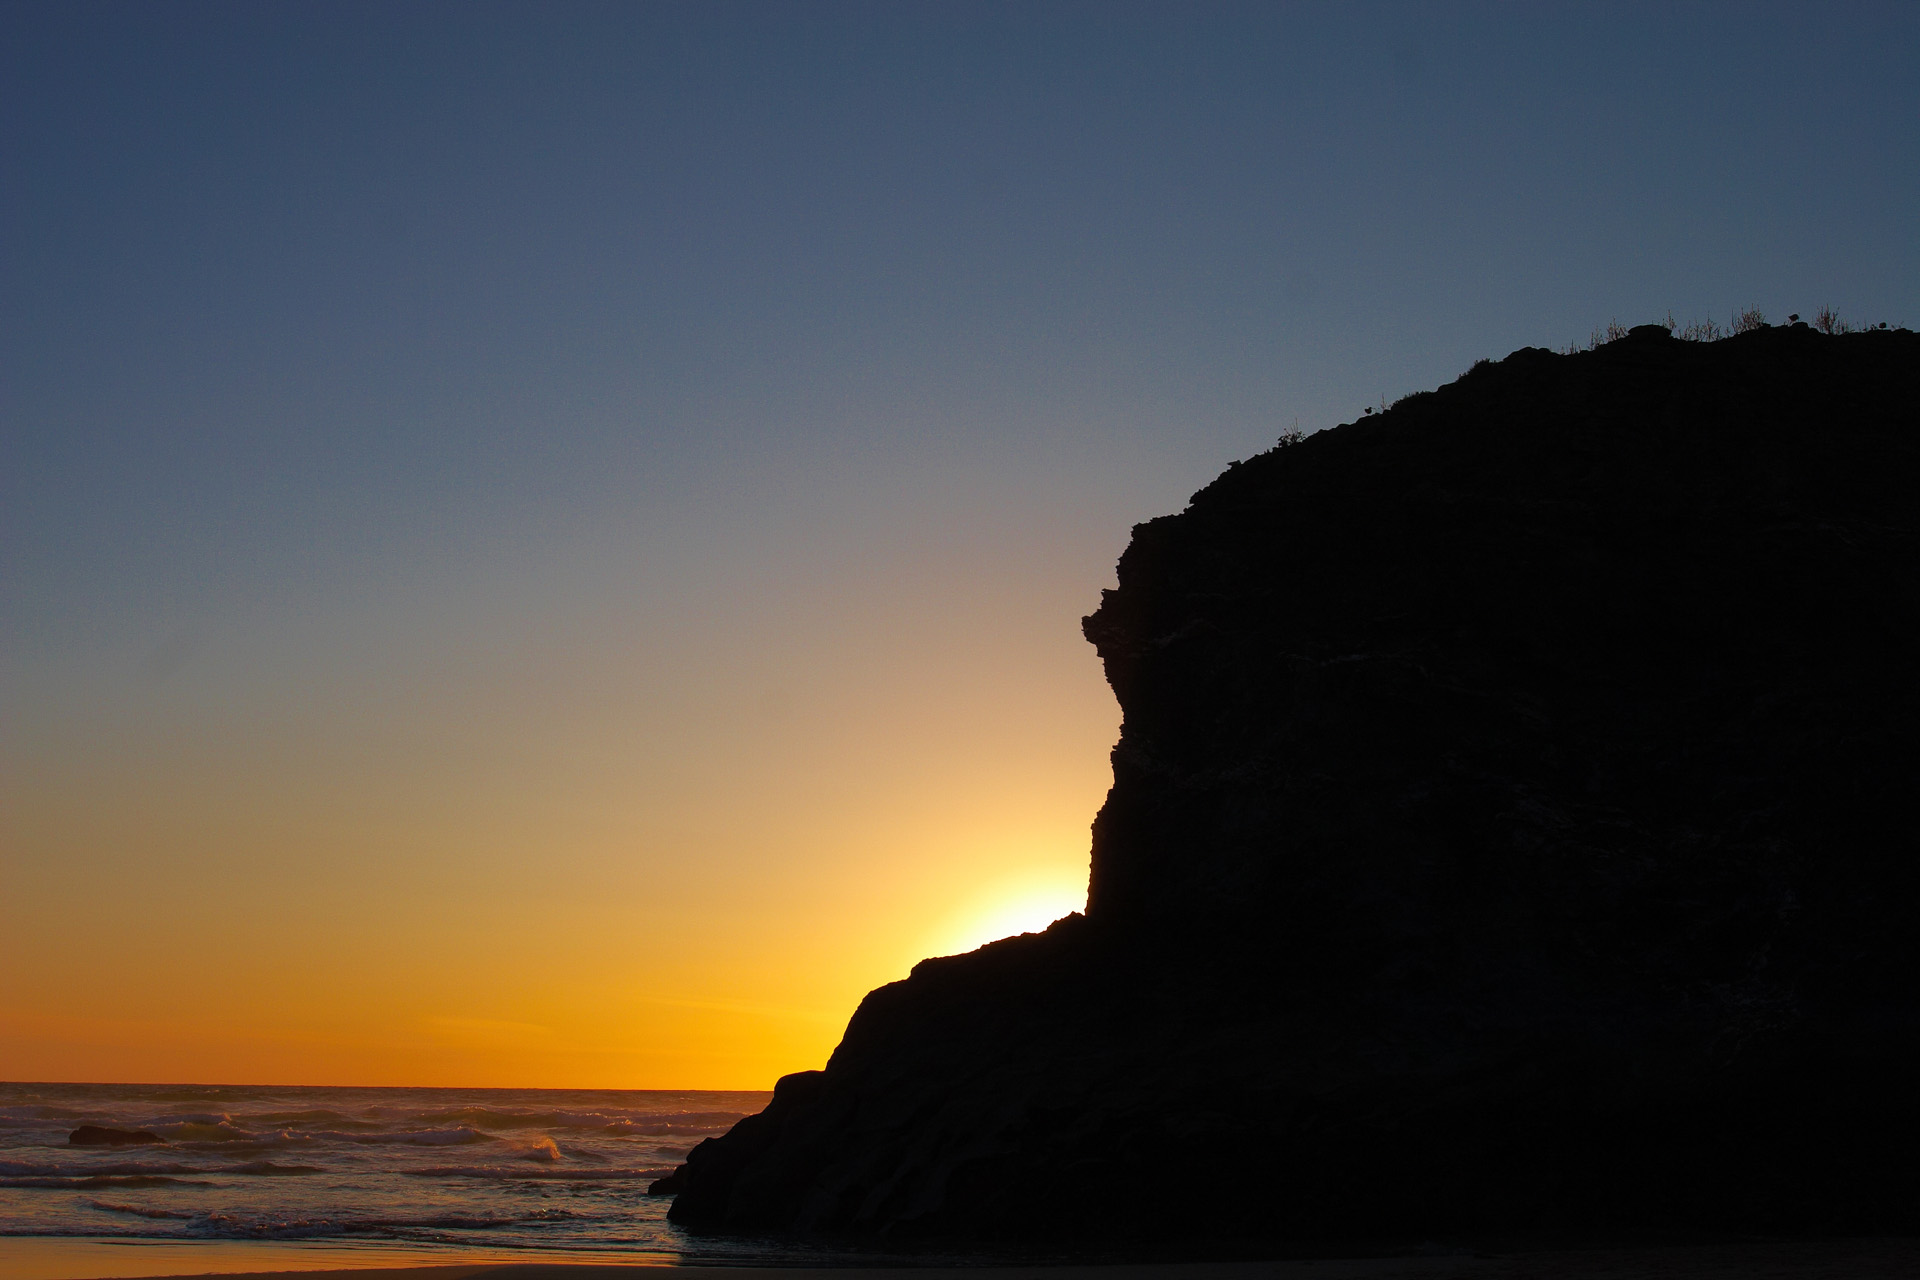 Rock Outcrop at Bedruthan Steps silhouetted against the setting